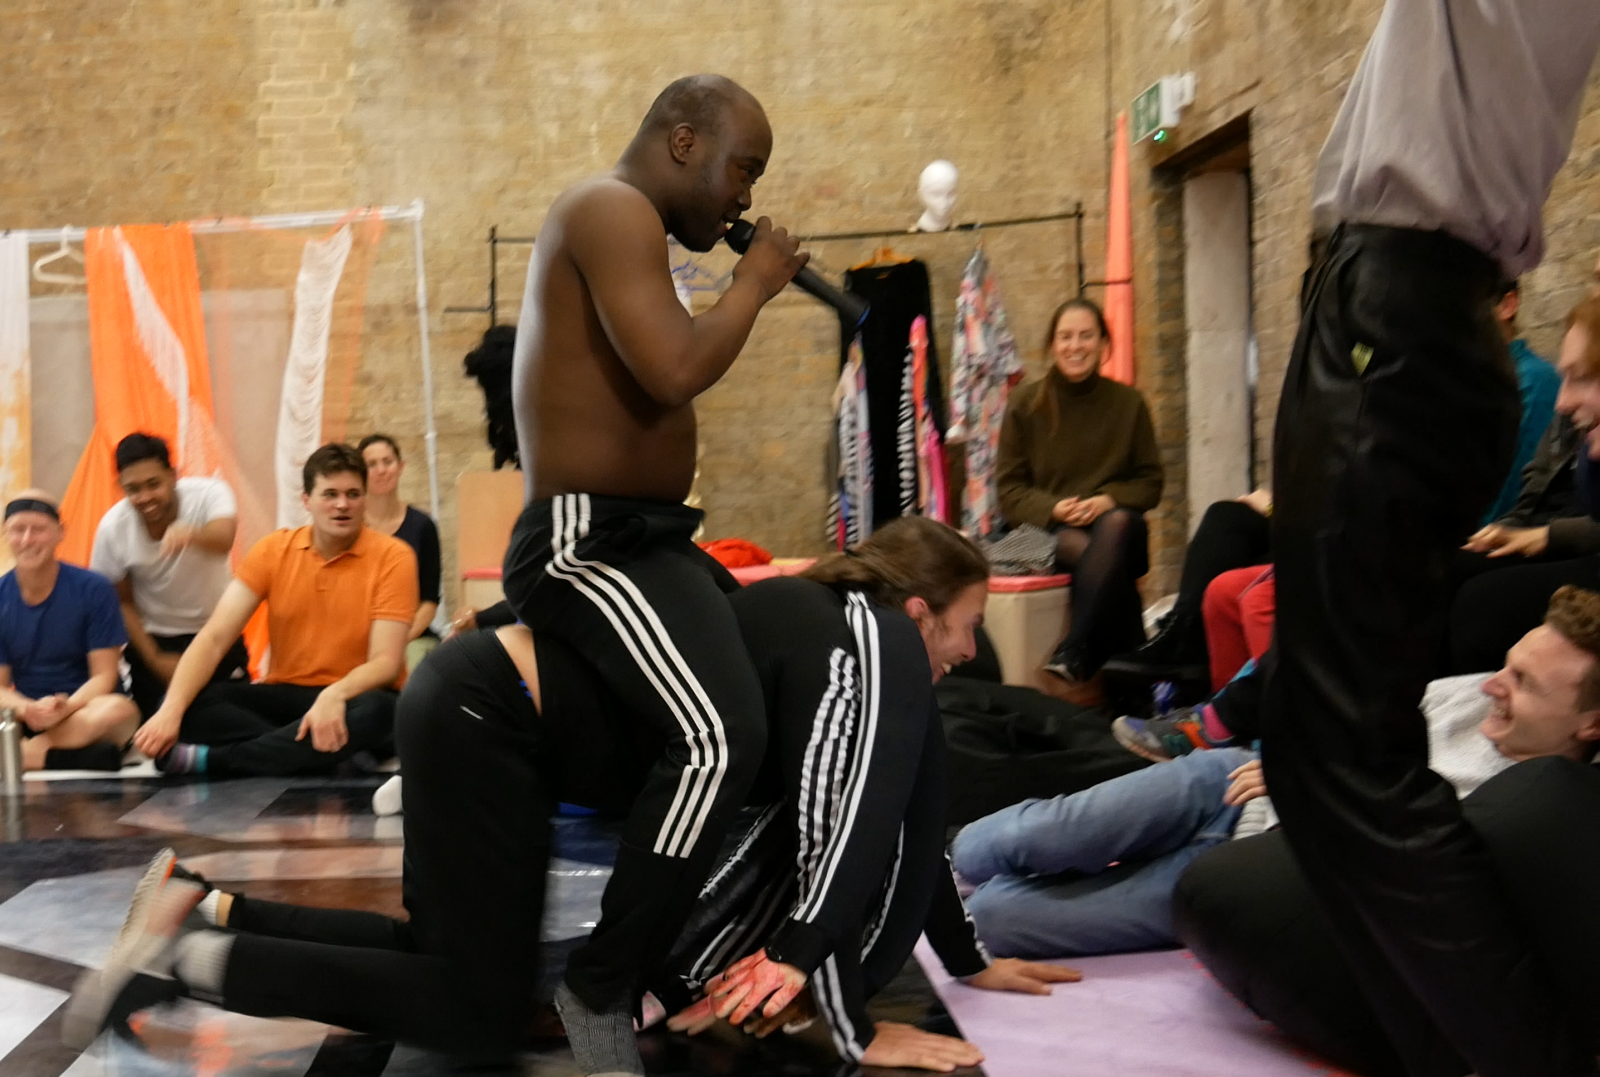 Freestylers performing to a busy crowd. One male performer is holding a microphone to their face whilst they sit on the back of another performer who is smiling to the crowd. They are both wearing black tracksuits.